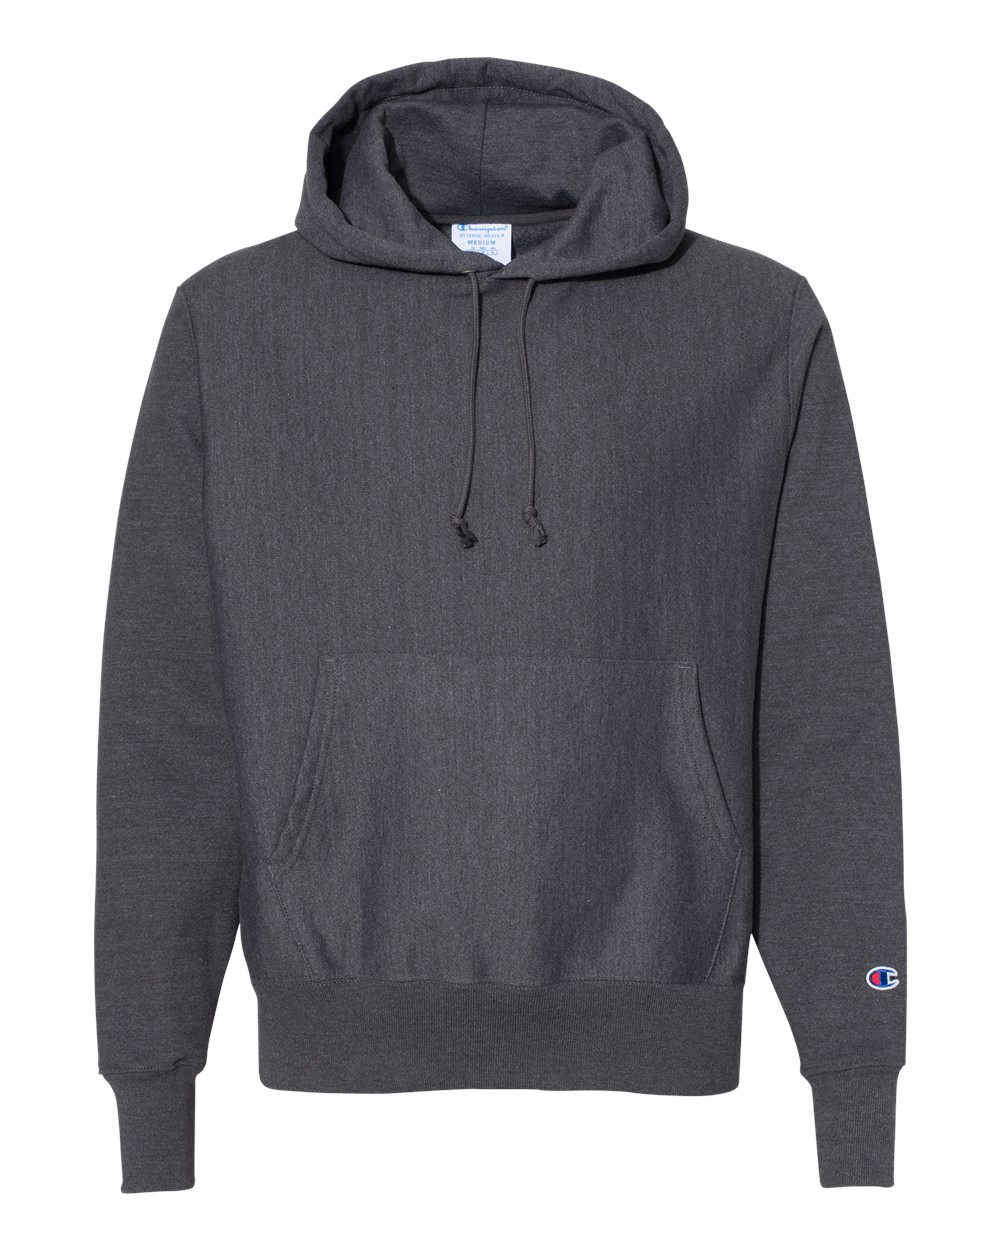 Champion-Mens-Reverse-Weave-Hooded-Pullover-Sweatshirt-S101-up-to-3XL thumbnail 21